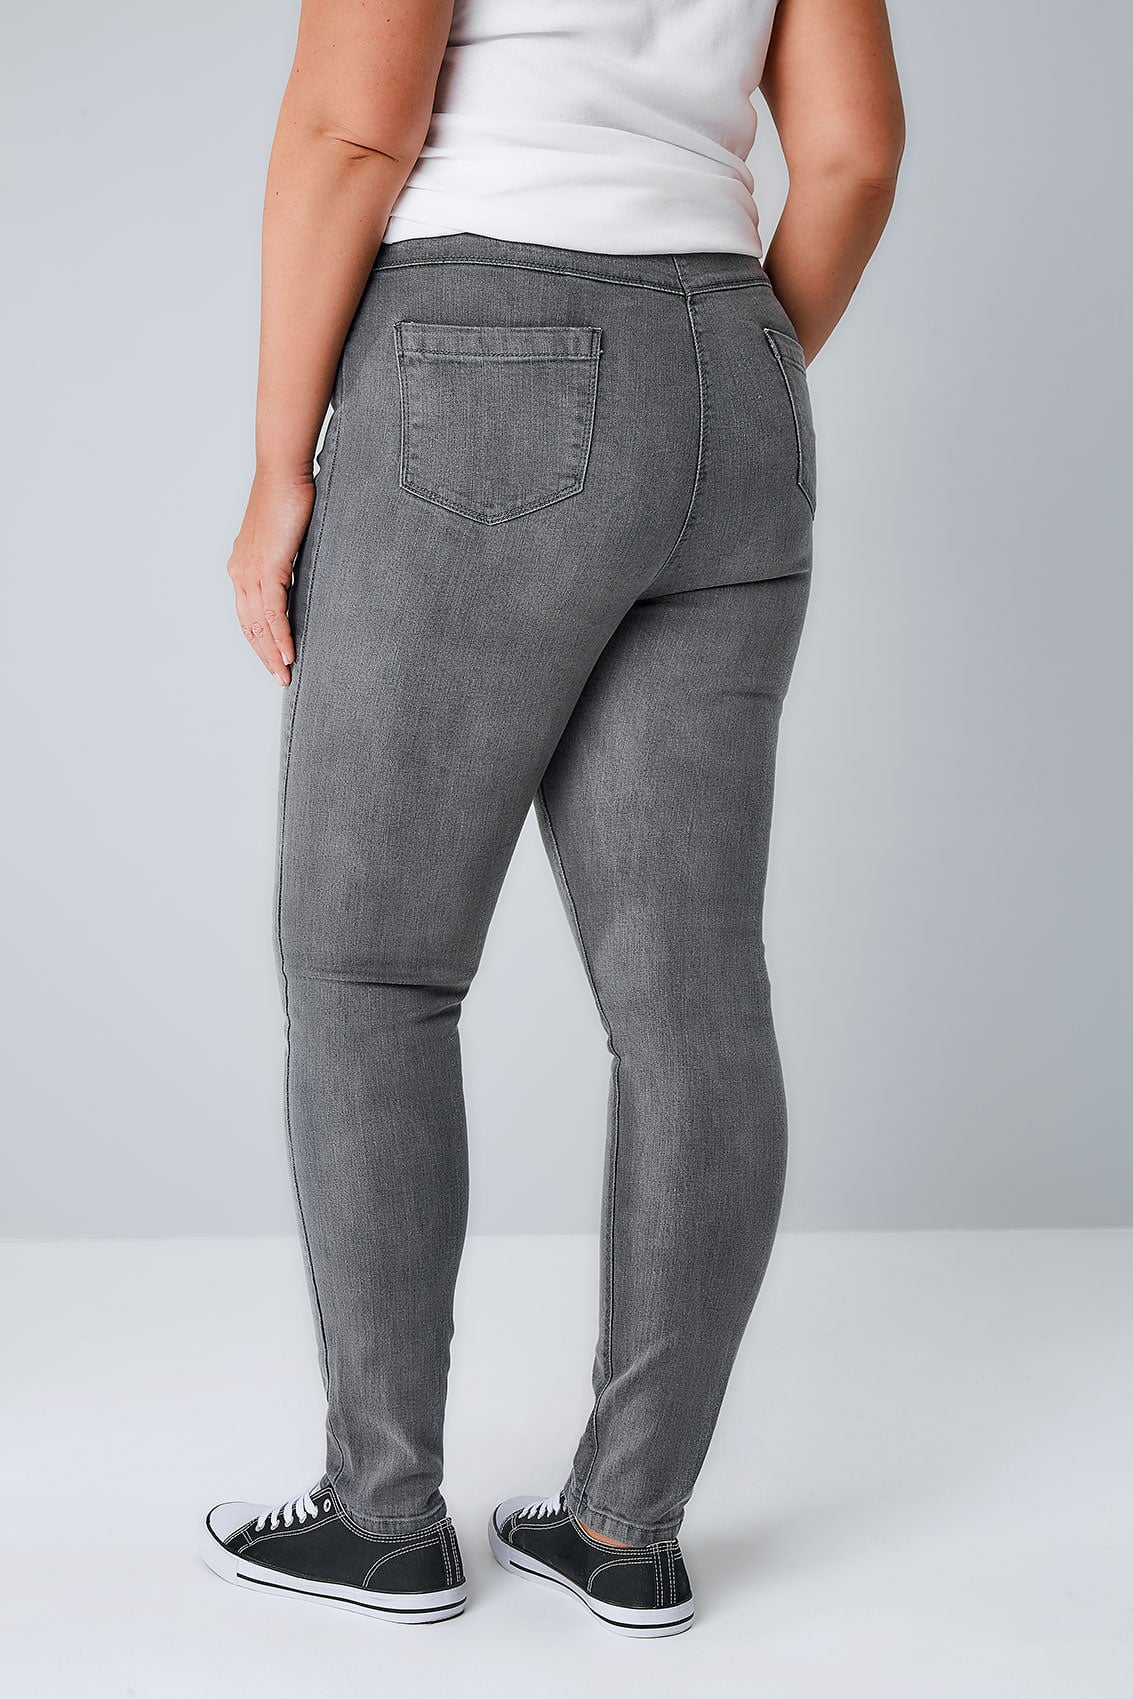 "Most Fashion Nova jeans & dresses have great stretch, please refer to product description for fabric details. Most Fashion Nova bottoms have an inseam of "" depending on the cut and style. Sizing may vary depending on cut and style."